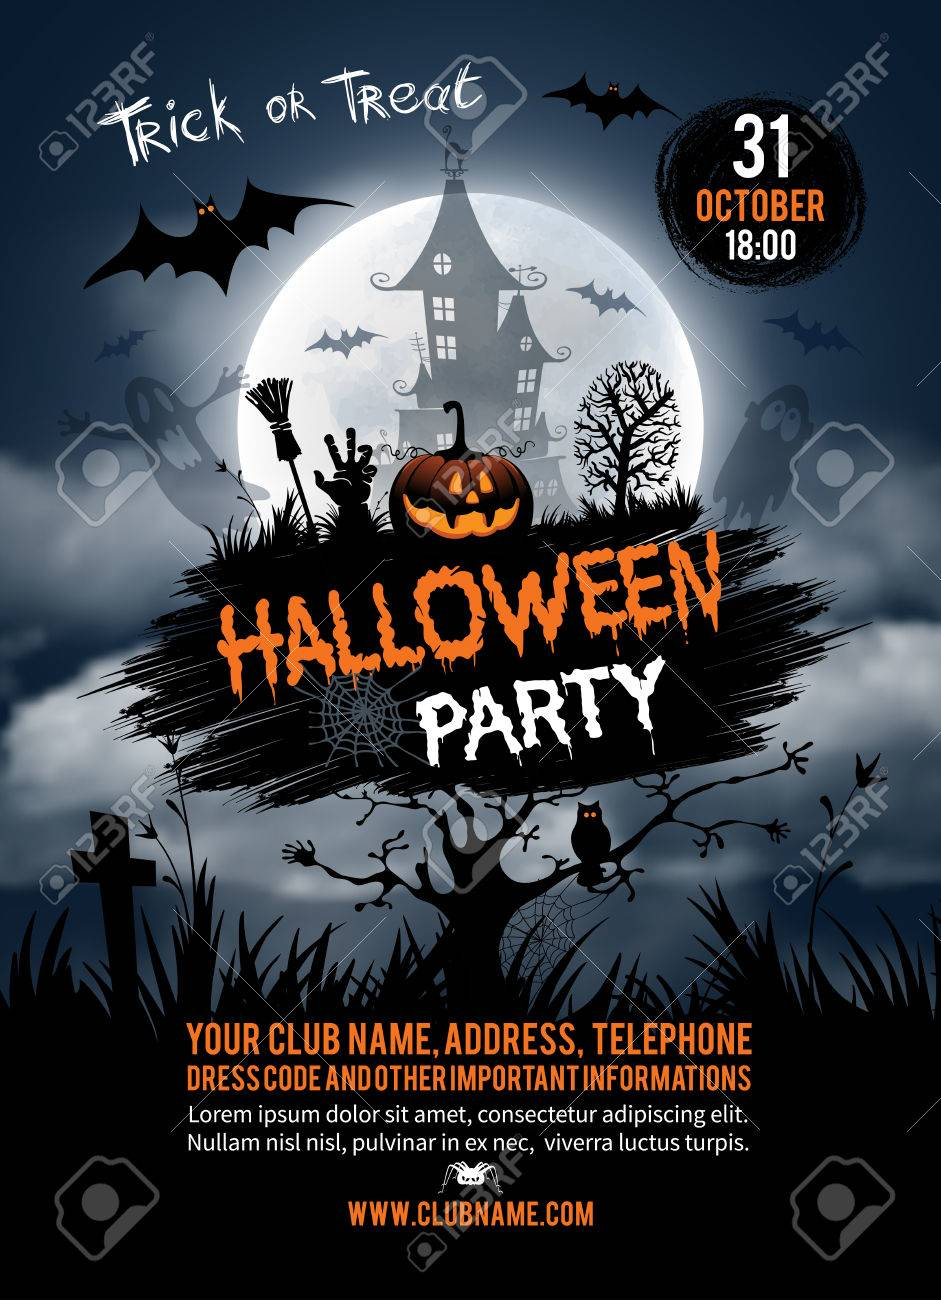 Halloween vertical background with pumpkin, haunted house and full moon. Flyer or invitation template for Halloween party. Vector illustration. - 63163843